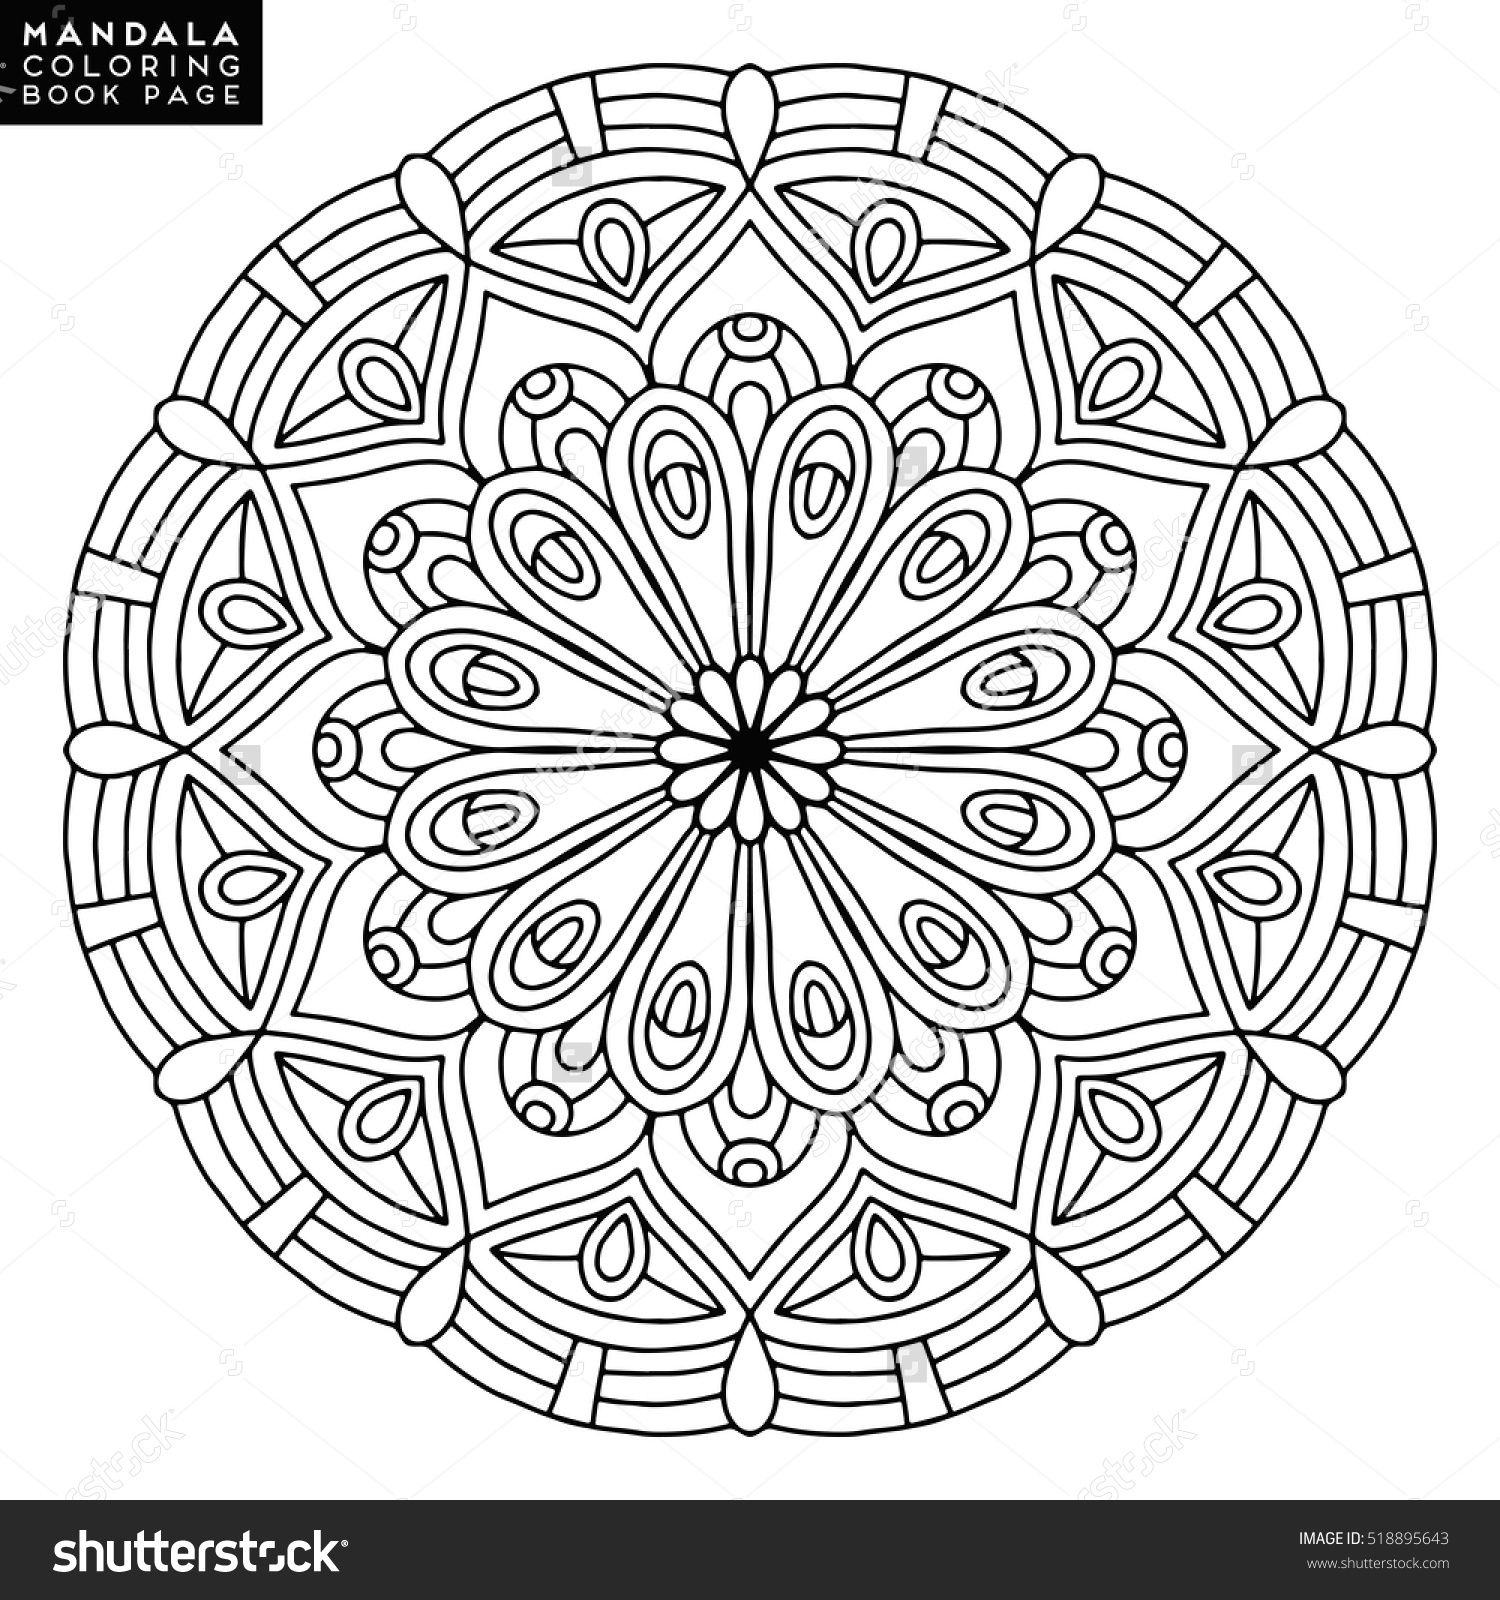 Co coloring book page template - Coloring Book Page Template Mandala Vector Floral Flower Oriental Coloring Book Page Outline Template Christmas